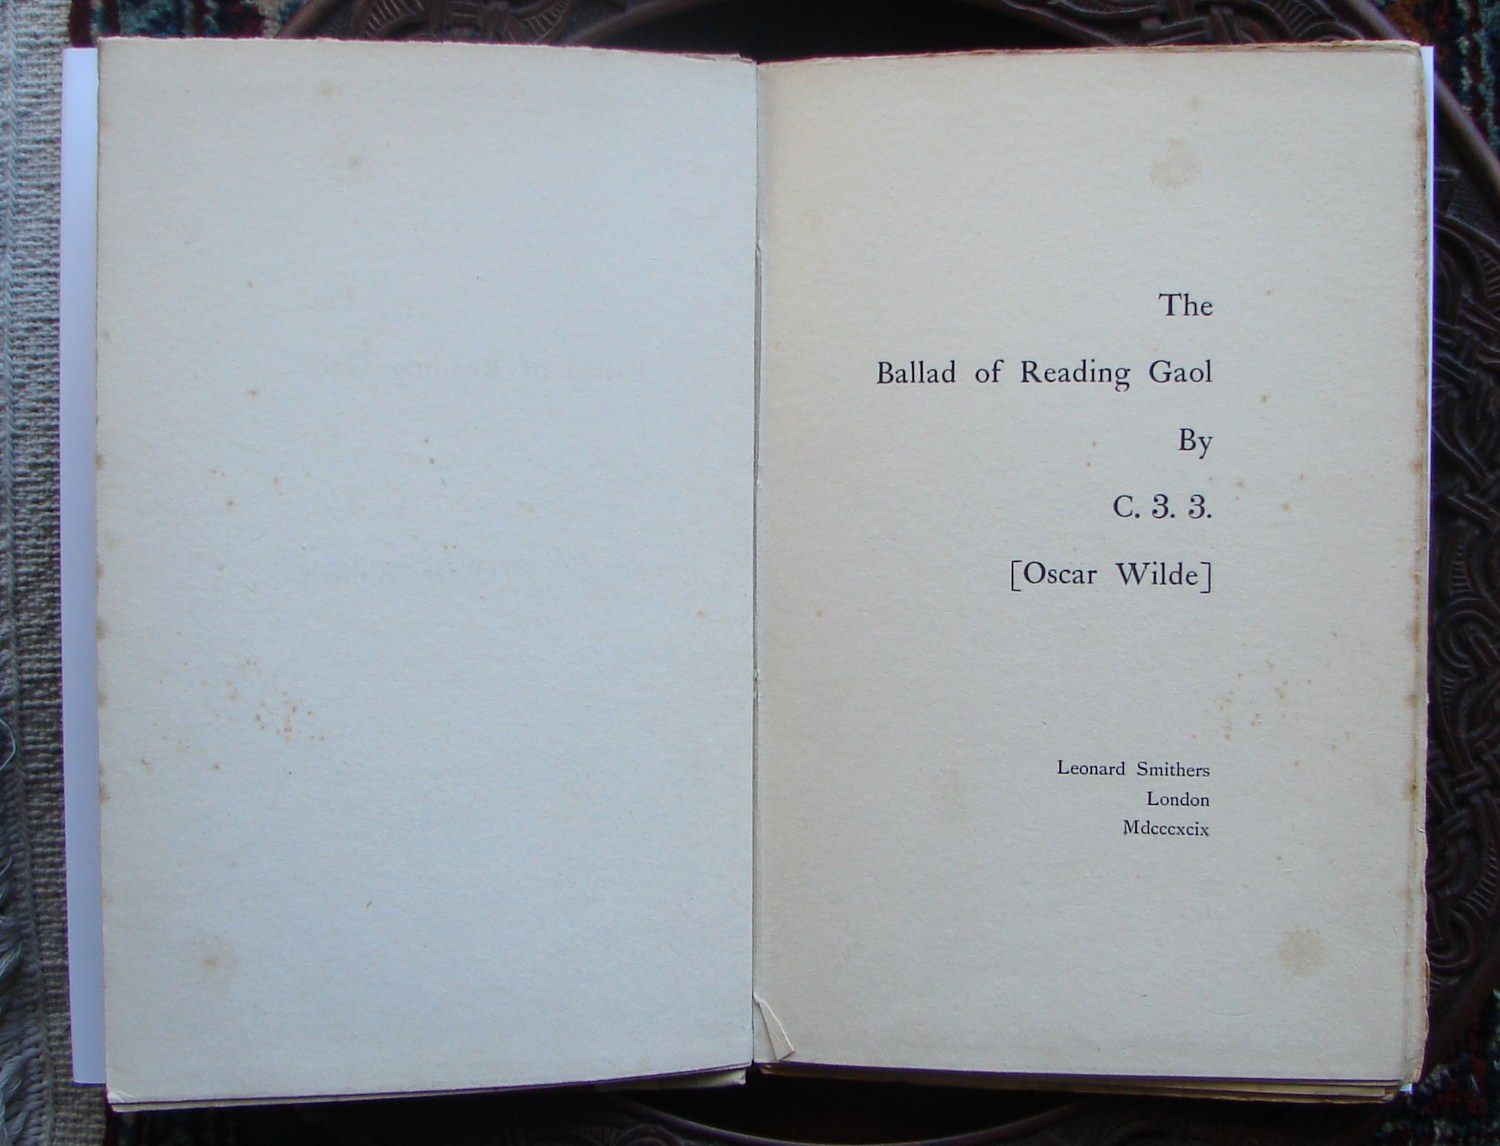 The Ballad of Reading Gaol 1899 Title Page